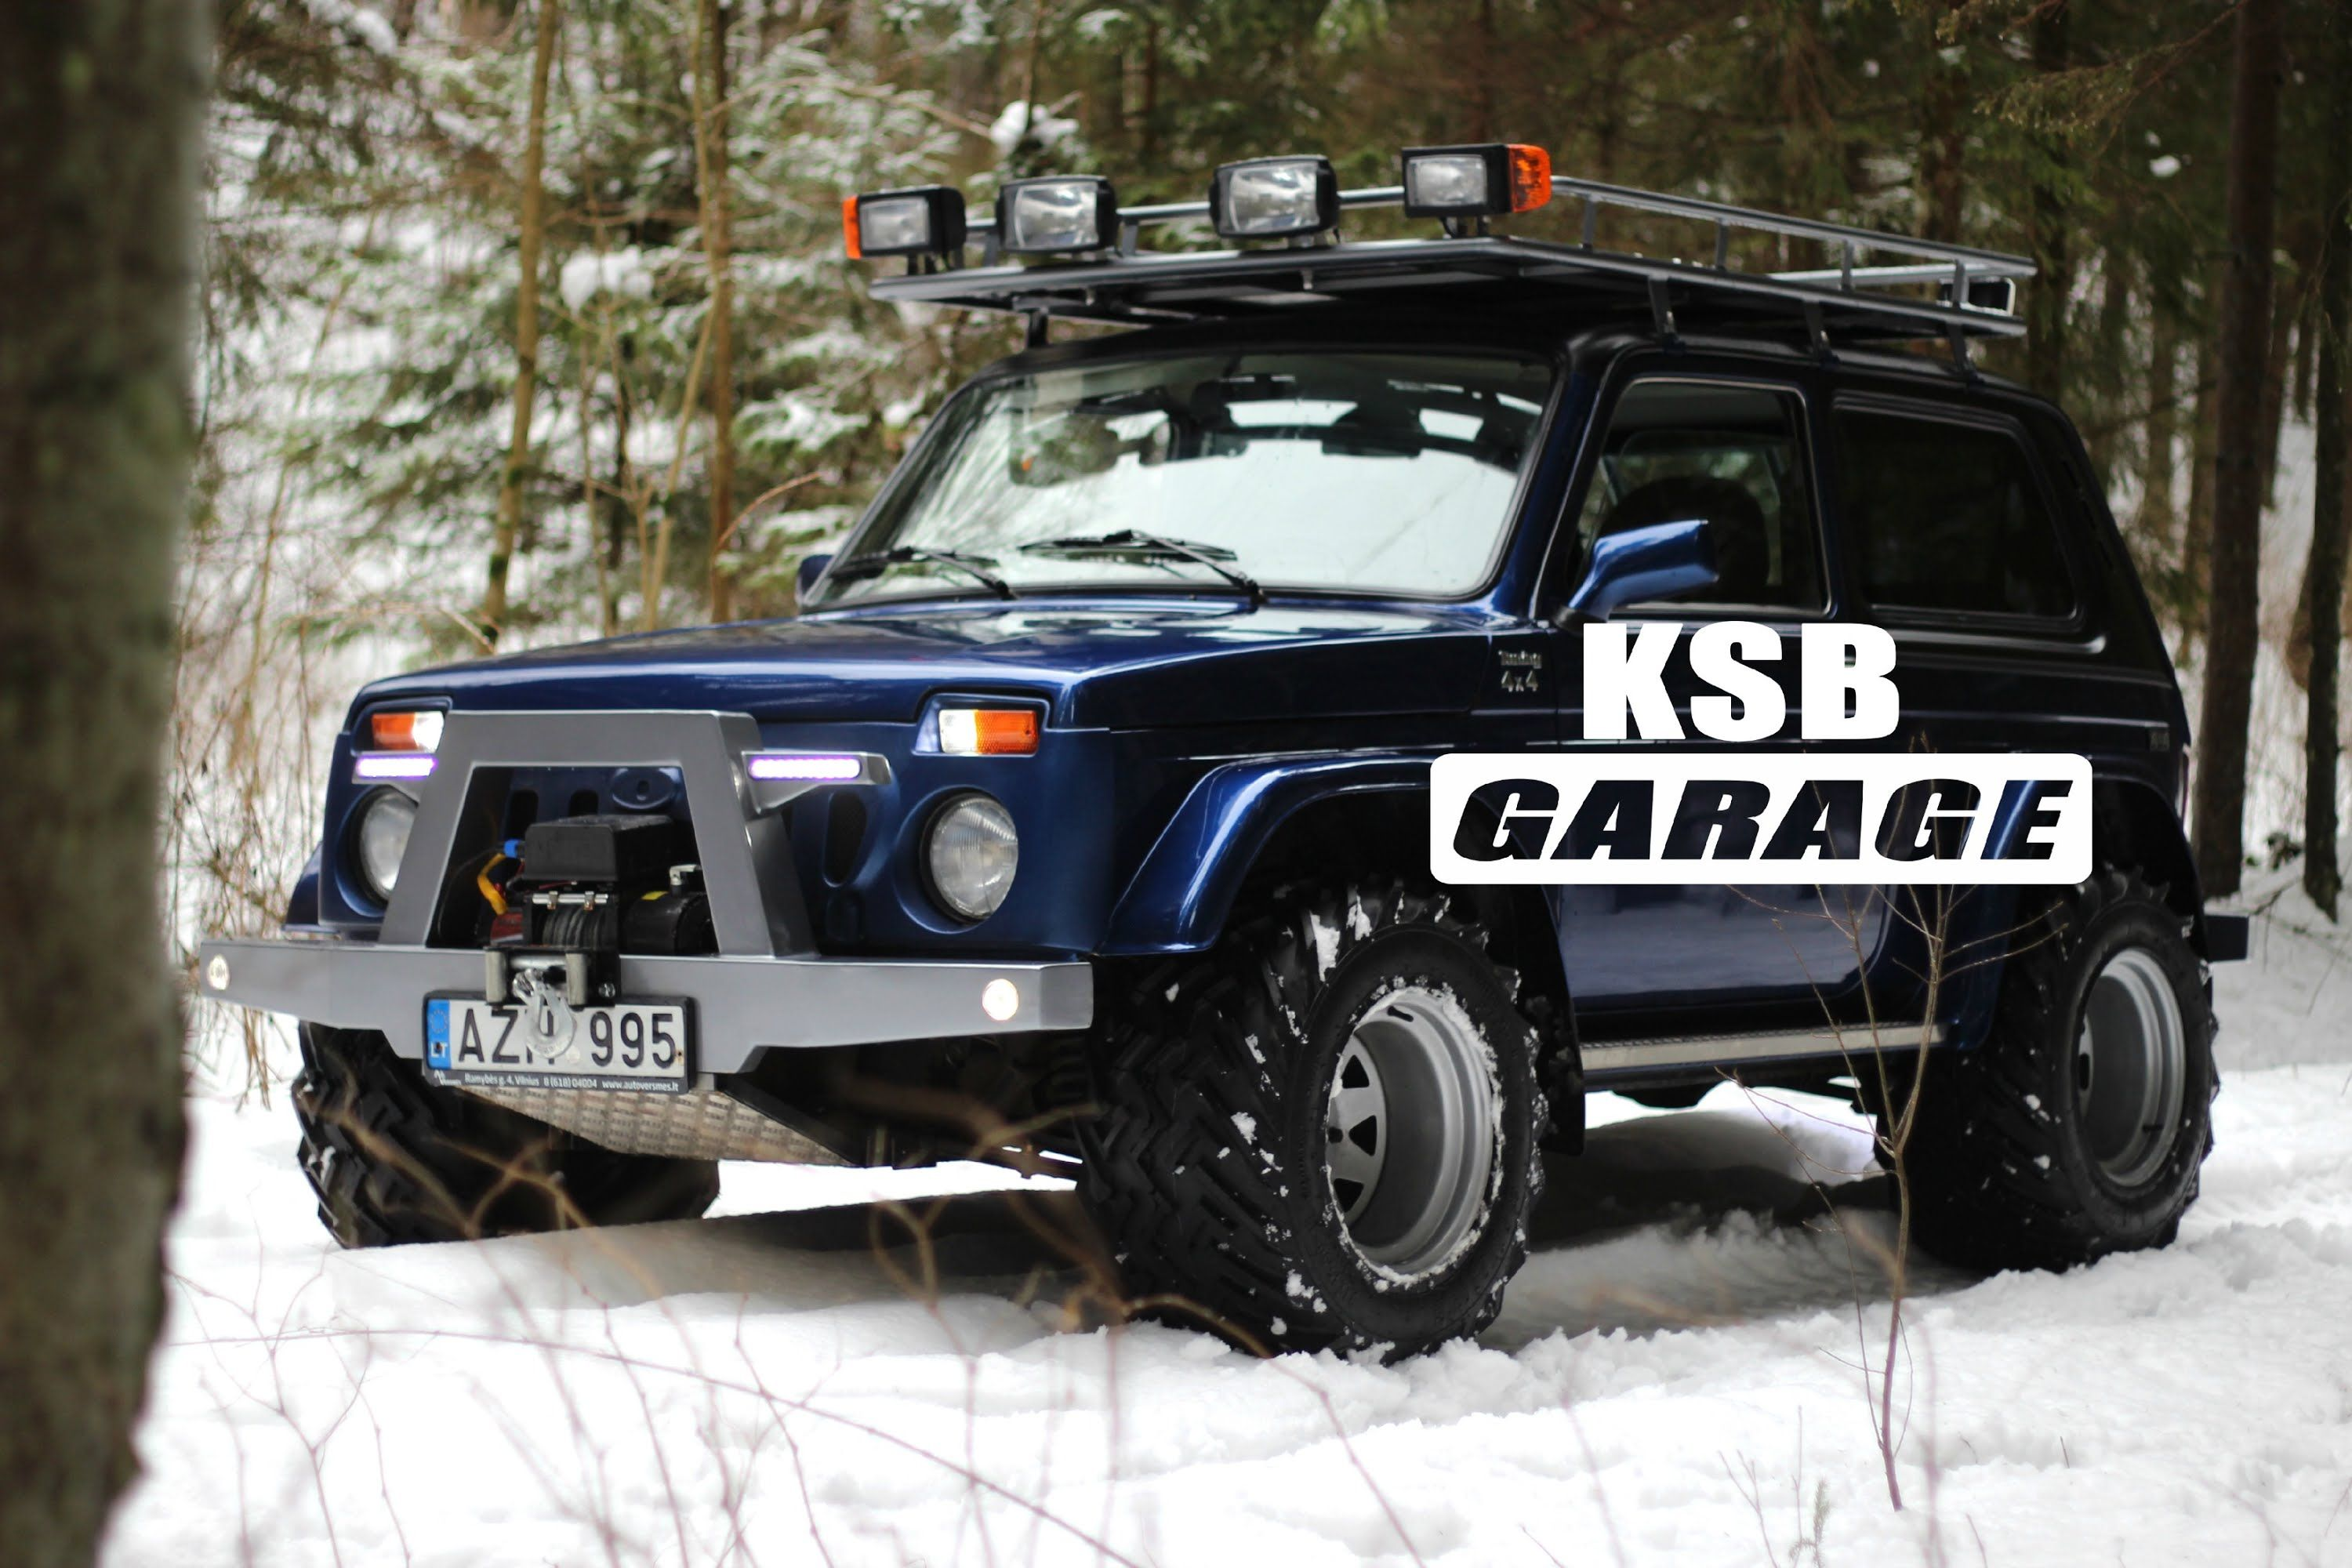 lada niva ksb garage ep 3 russian car 4x4 pinterest. Black Bedroom Furniture Sets. Home Design Ideas